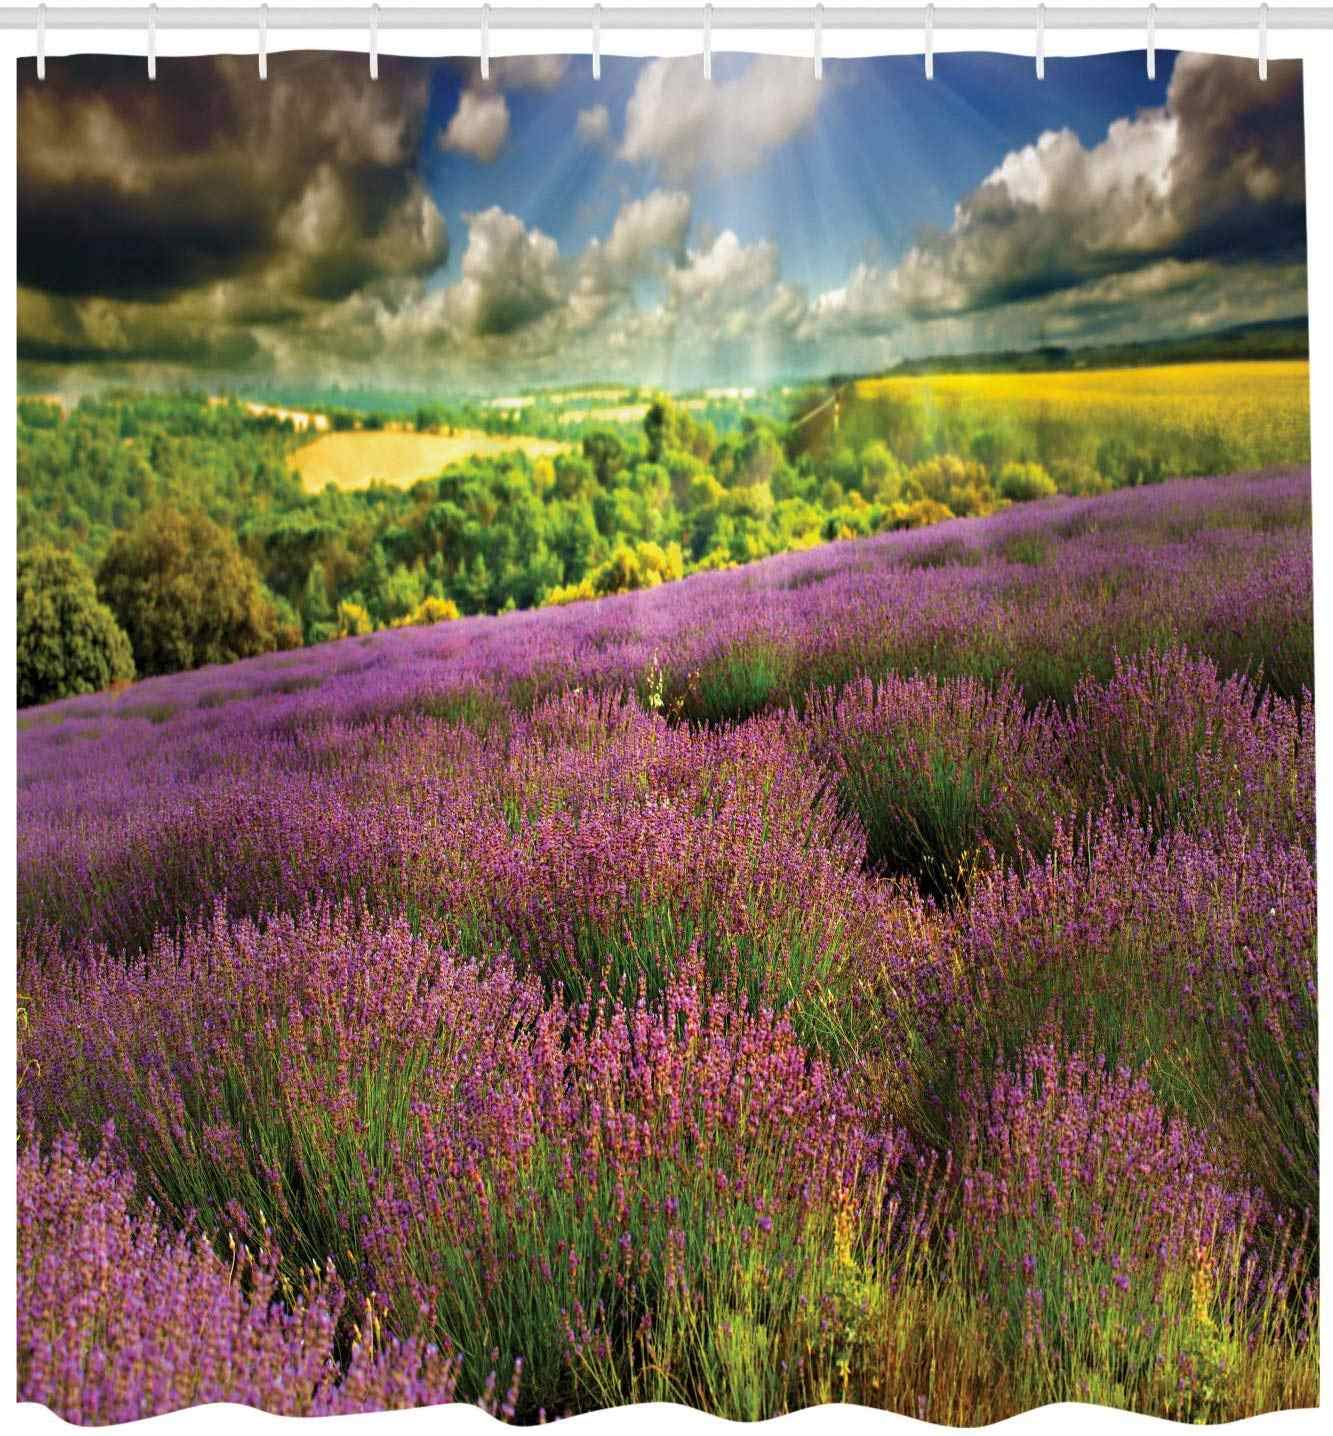 French Country Shower Curtain Nature Themed Beautiful Outdoor Scene Of Lavender Field And Cloudy Sky Cloth Fabric Bathroom Decor Shower Curtains Aliexpress